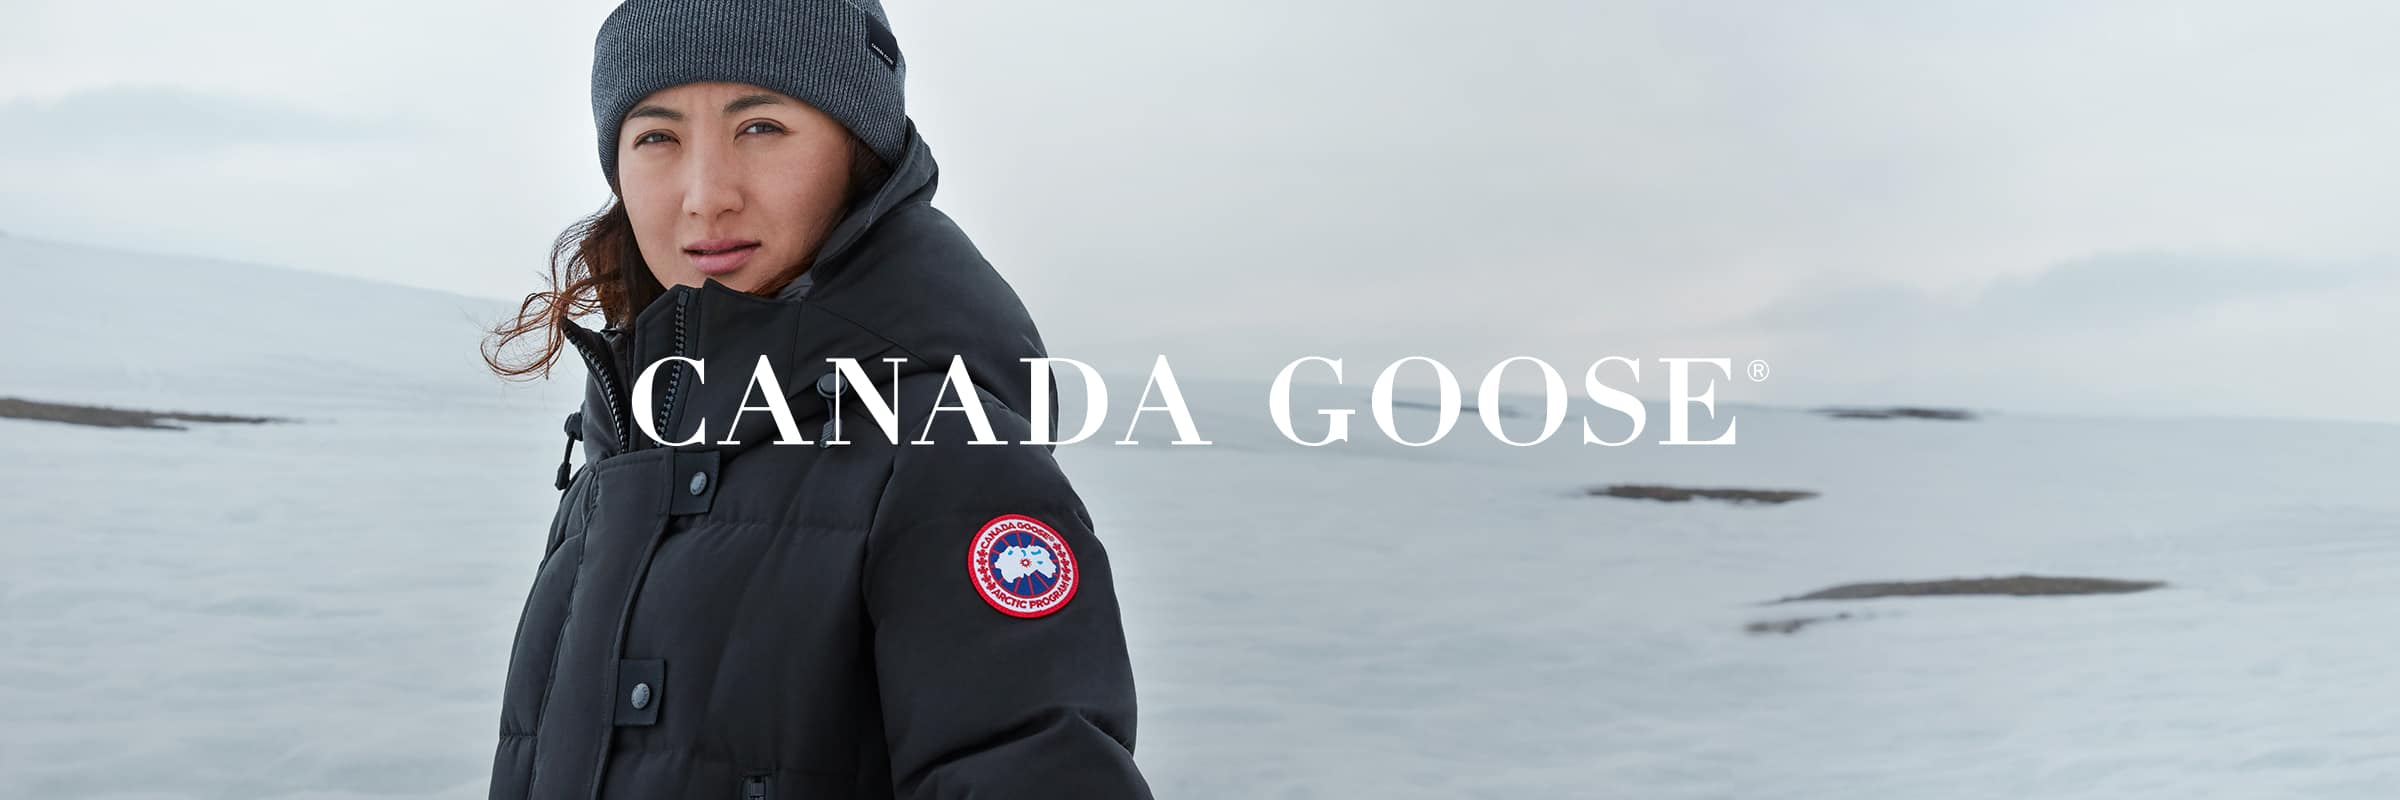 Best Canada Goose Parkas for Winter 2020-21